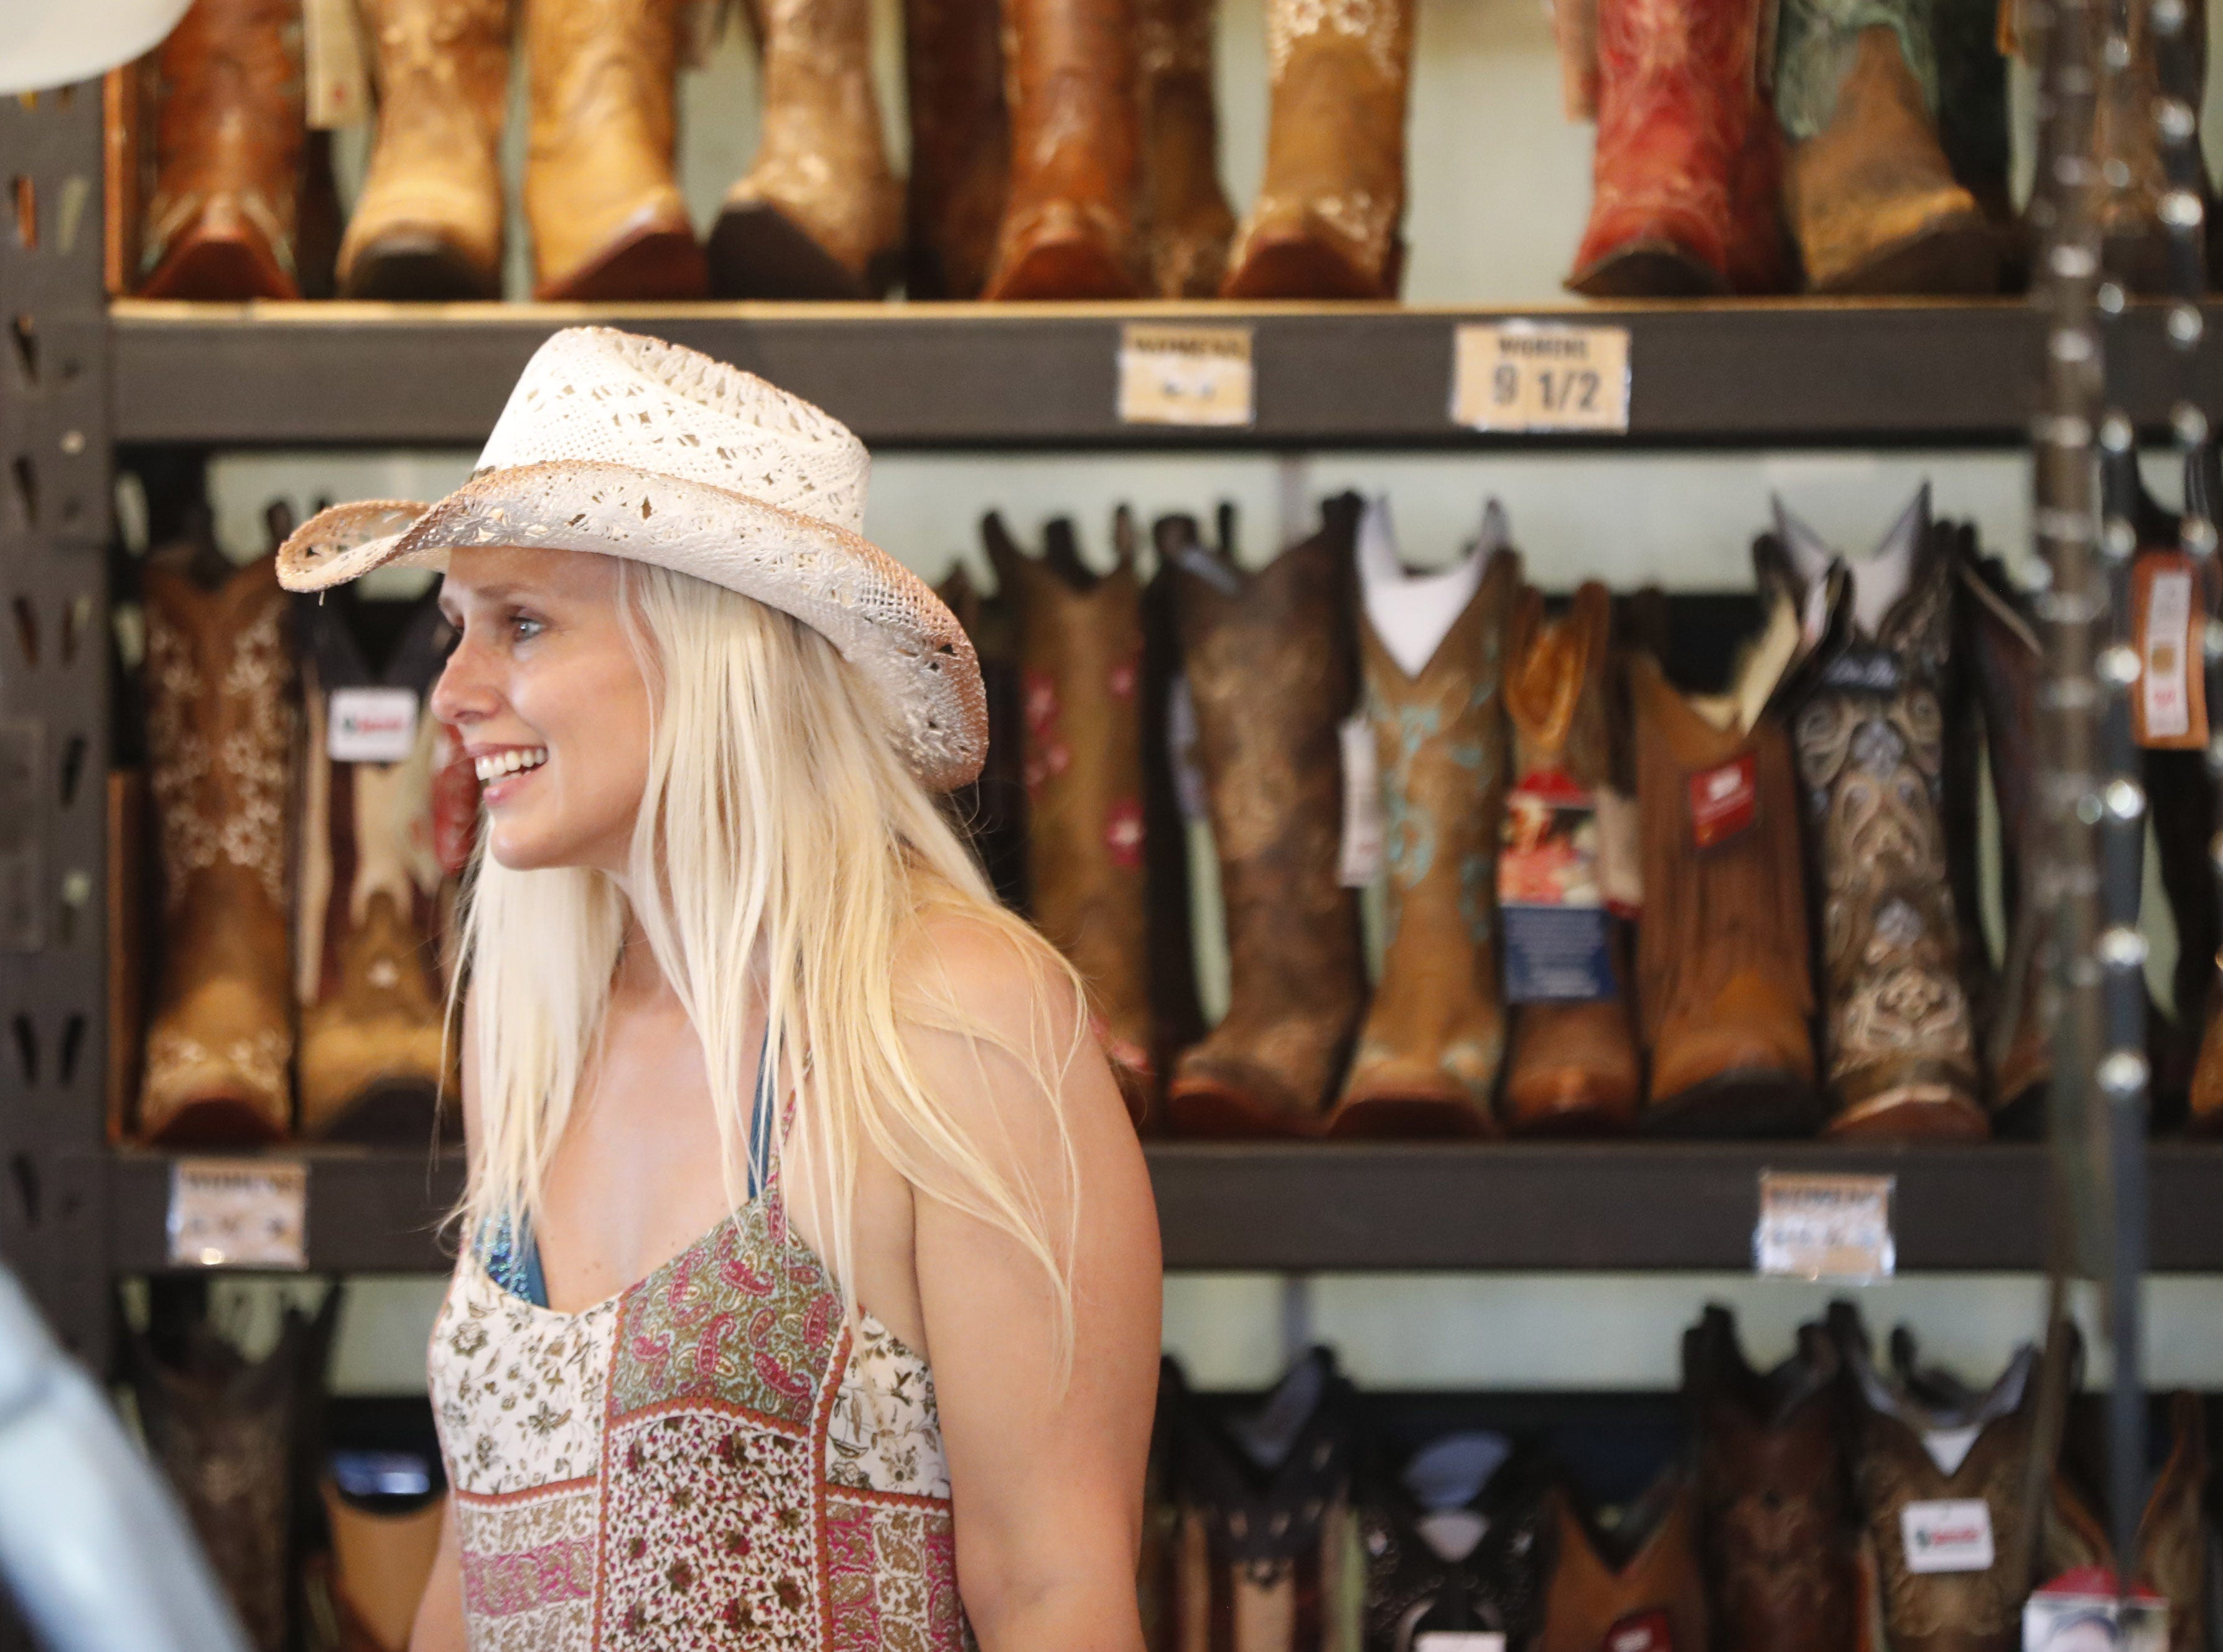 Country music fans look through boots for sale during Country Thunder in Florence, Ariz. on Saturday, April 13, 2019.